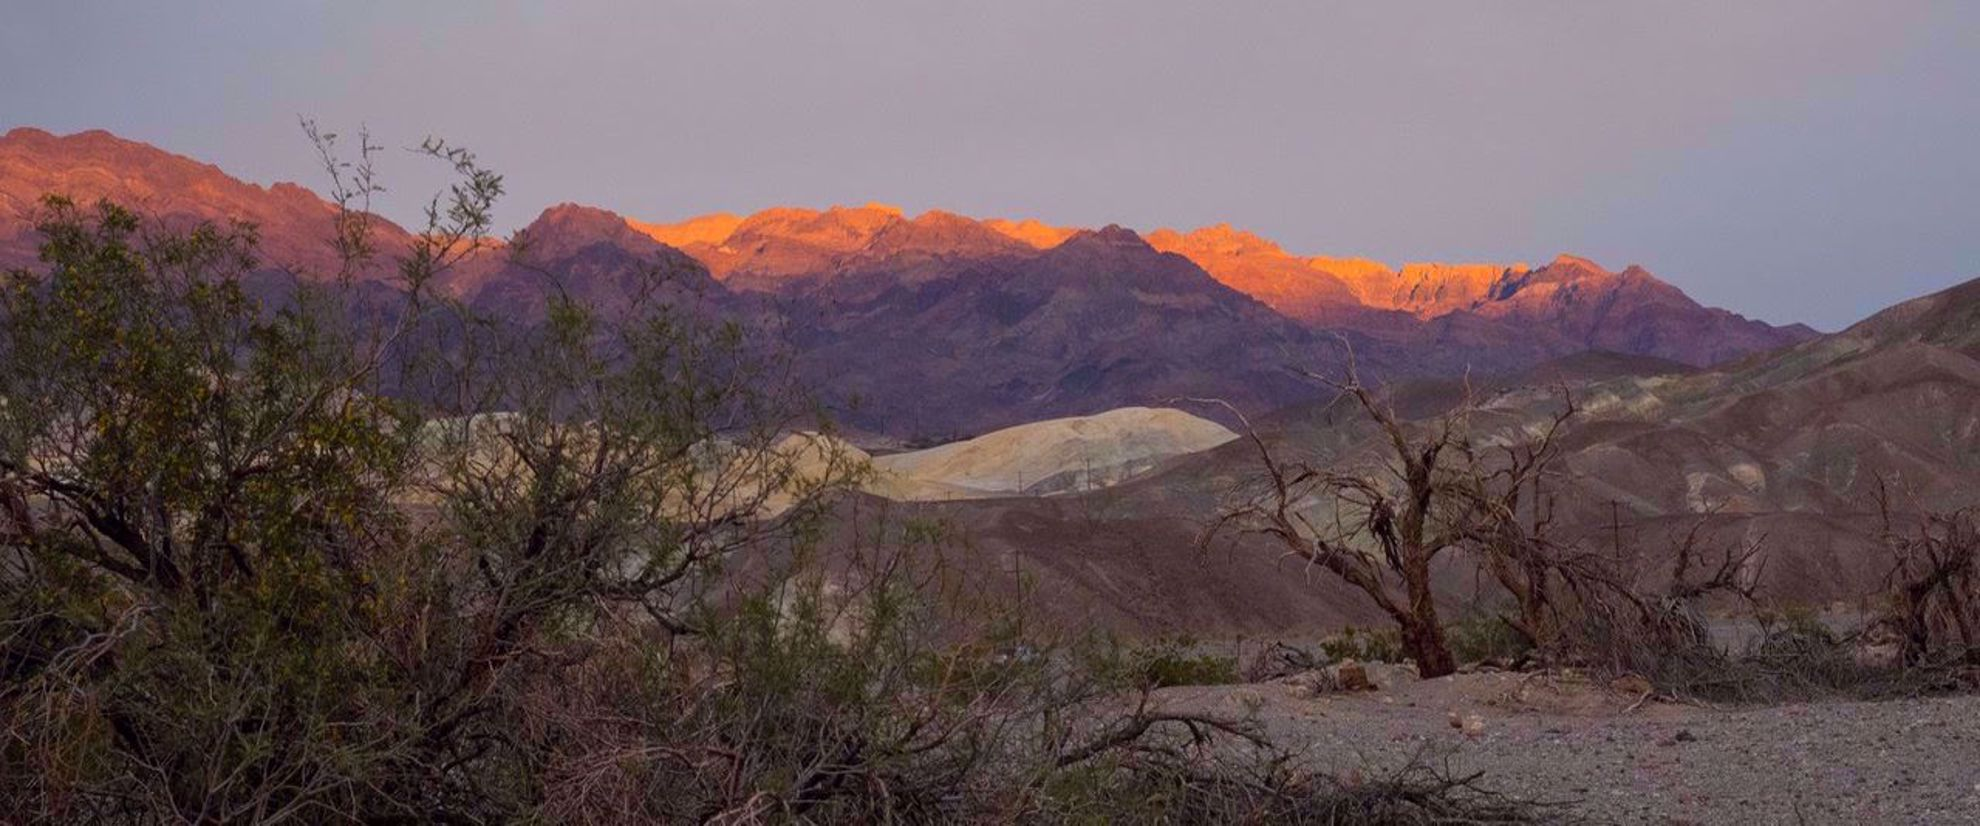 red sunset on mountain tops of death valley